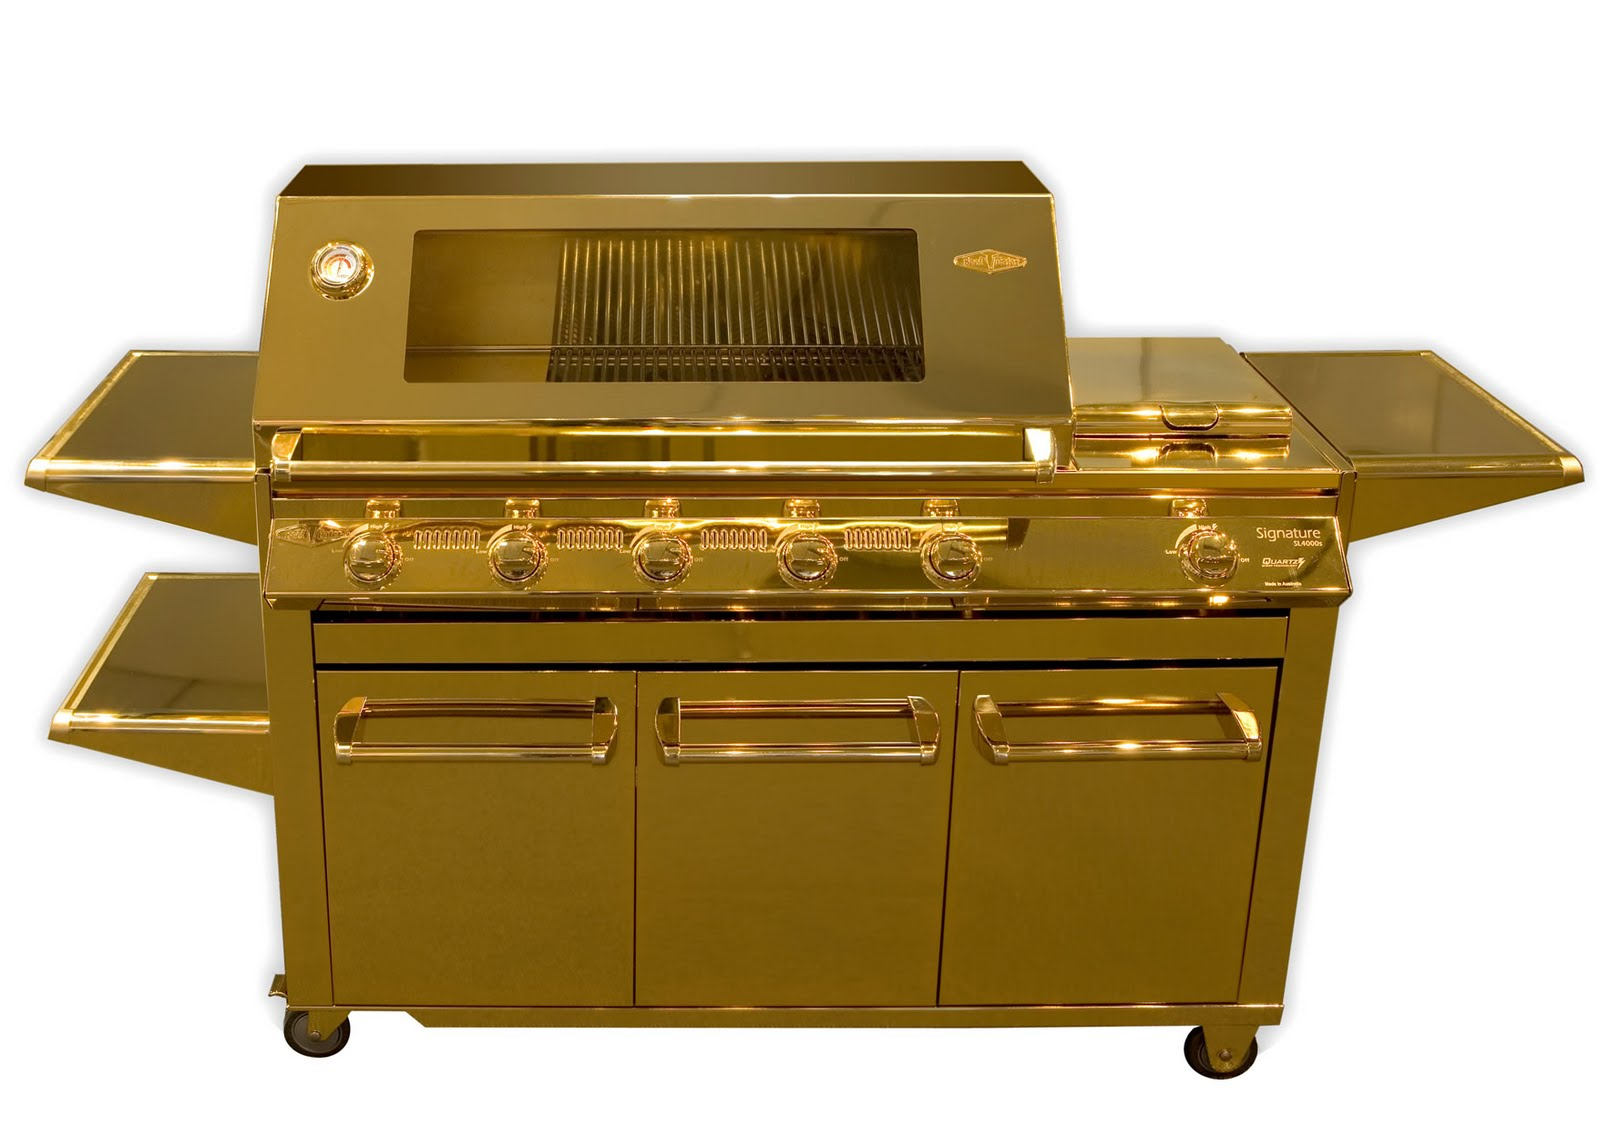 World's Most Expensive BBQ Grills – Reviews / Ratings |Most Expensive Bbq Grills